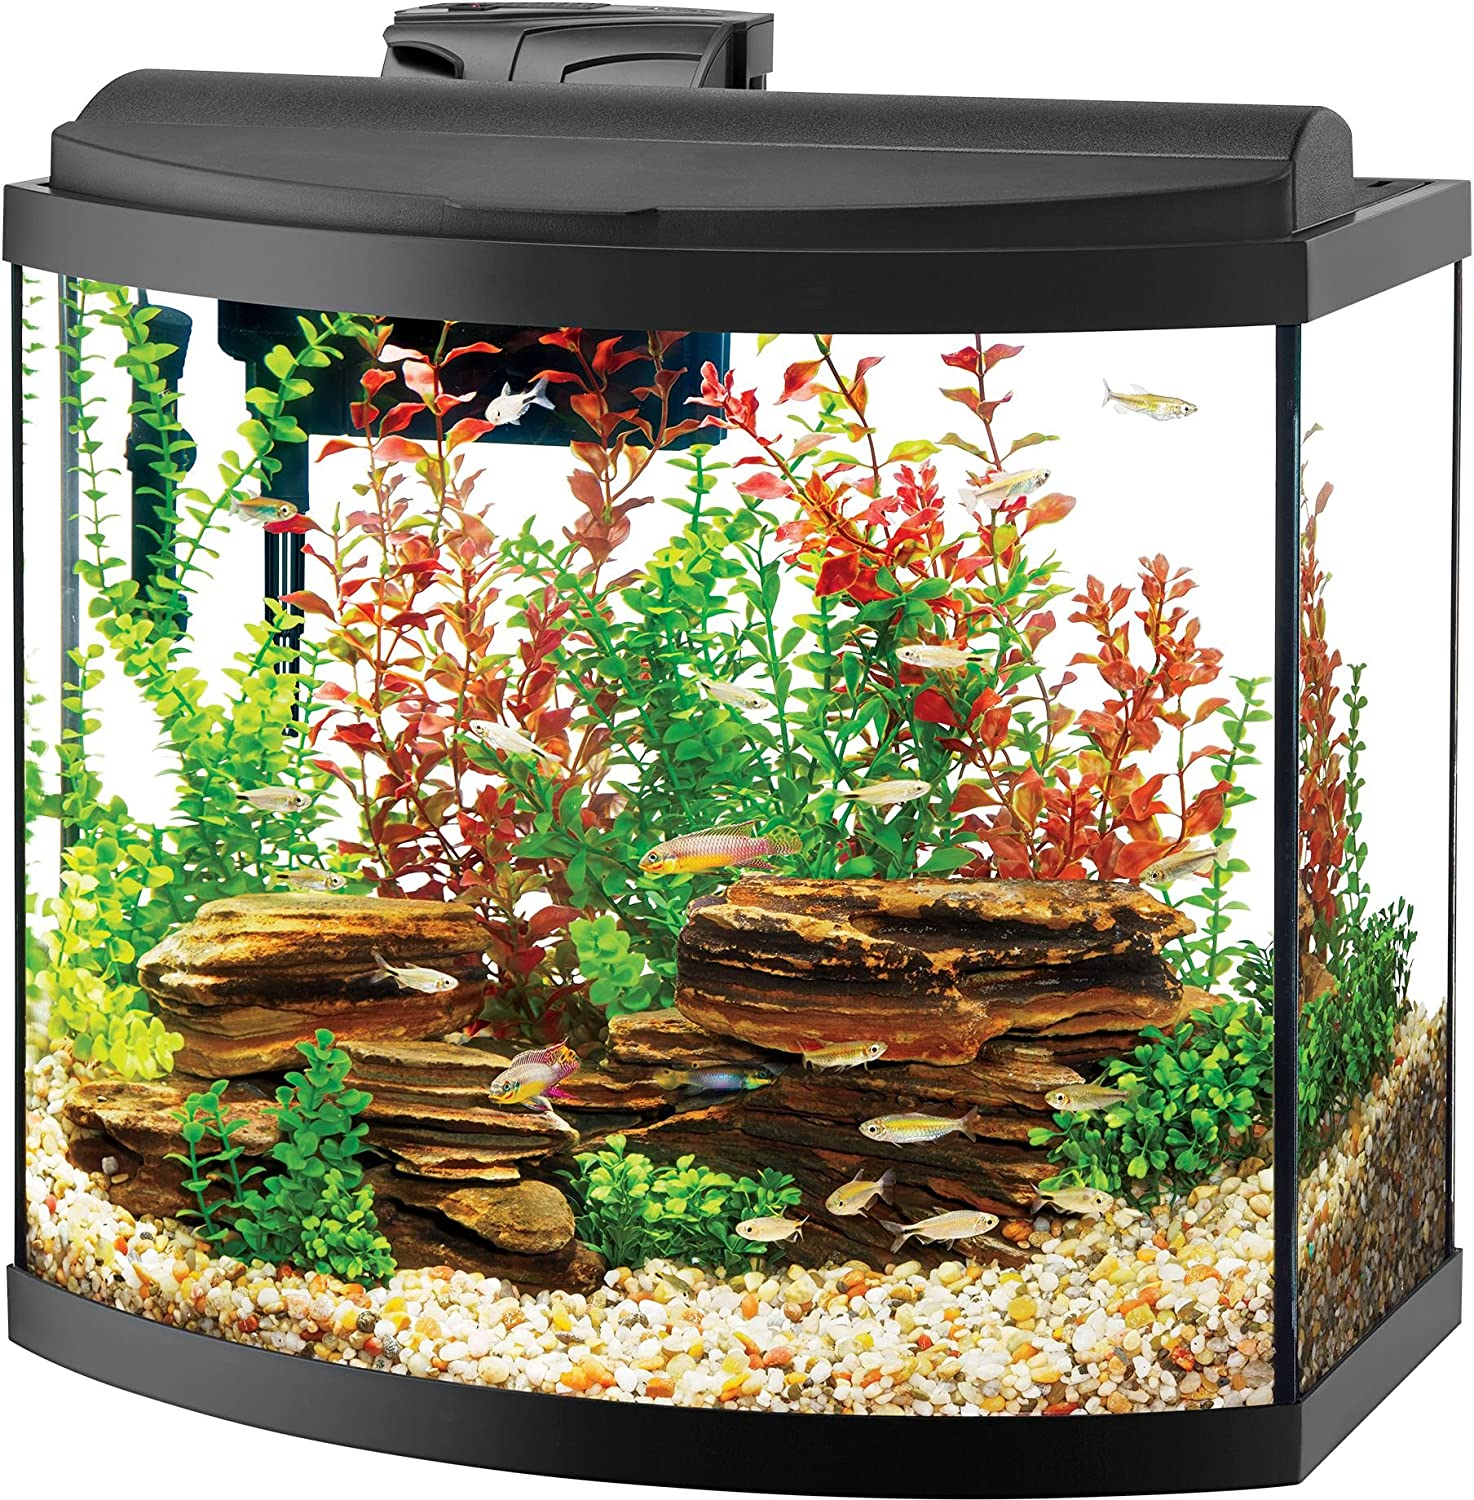 Aqueon Deluxe LED Bow front Aquarium Kit